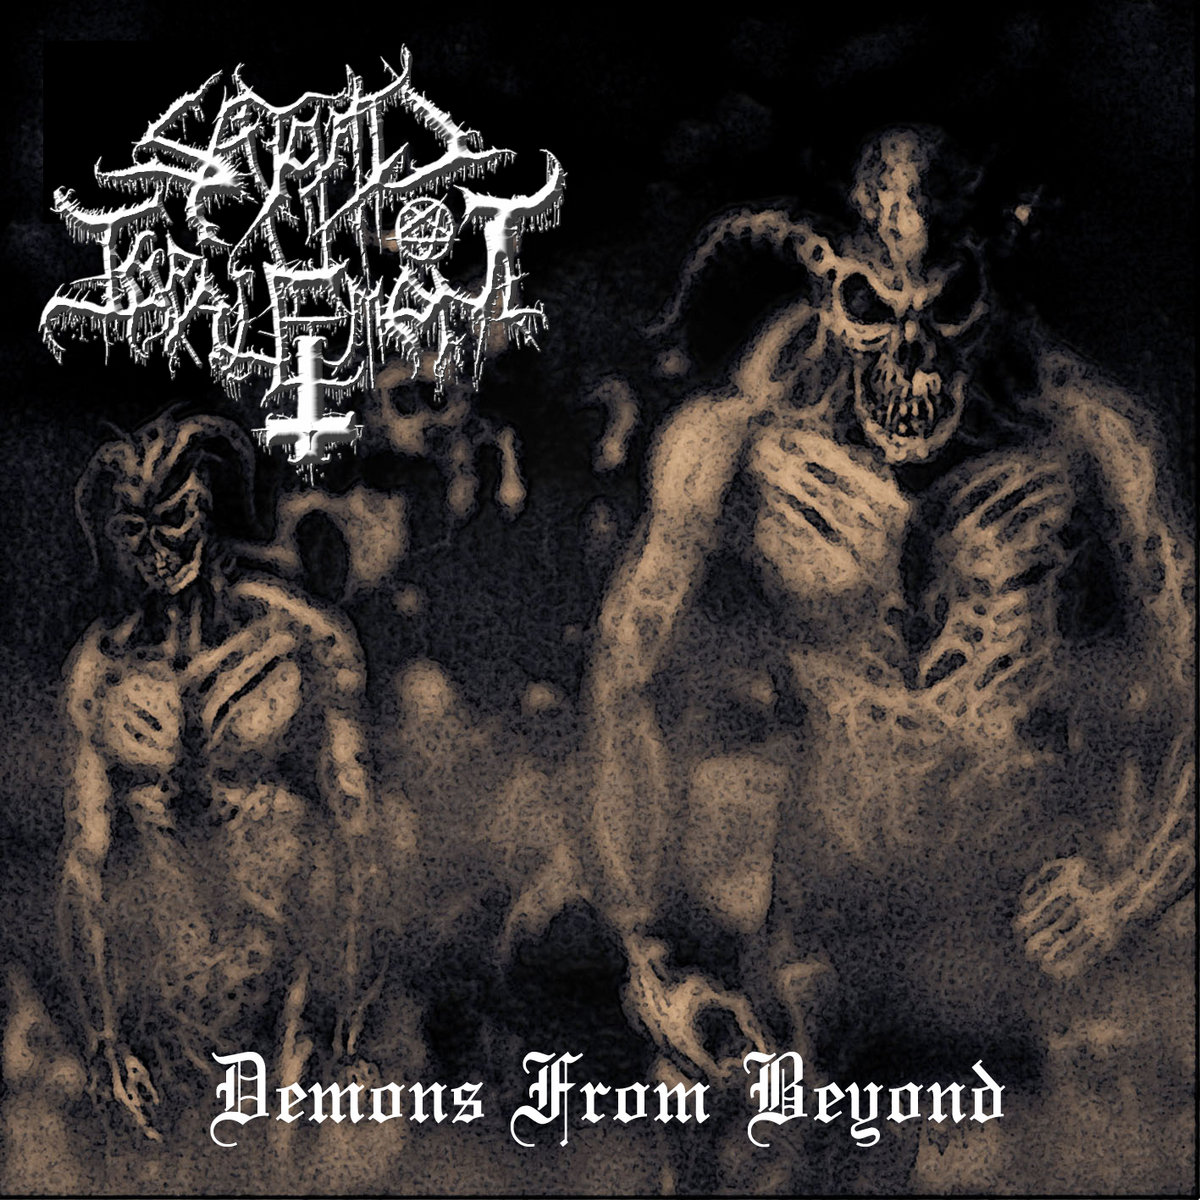 Satanic Impalement - Demons From Beyond   Macabre Mastermind Records